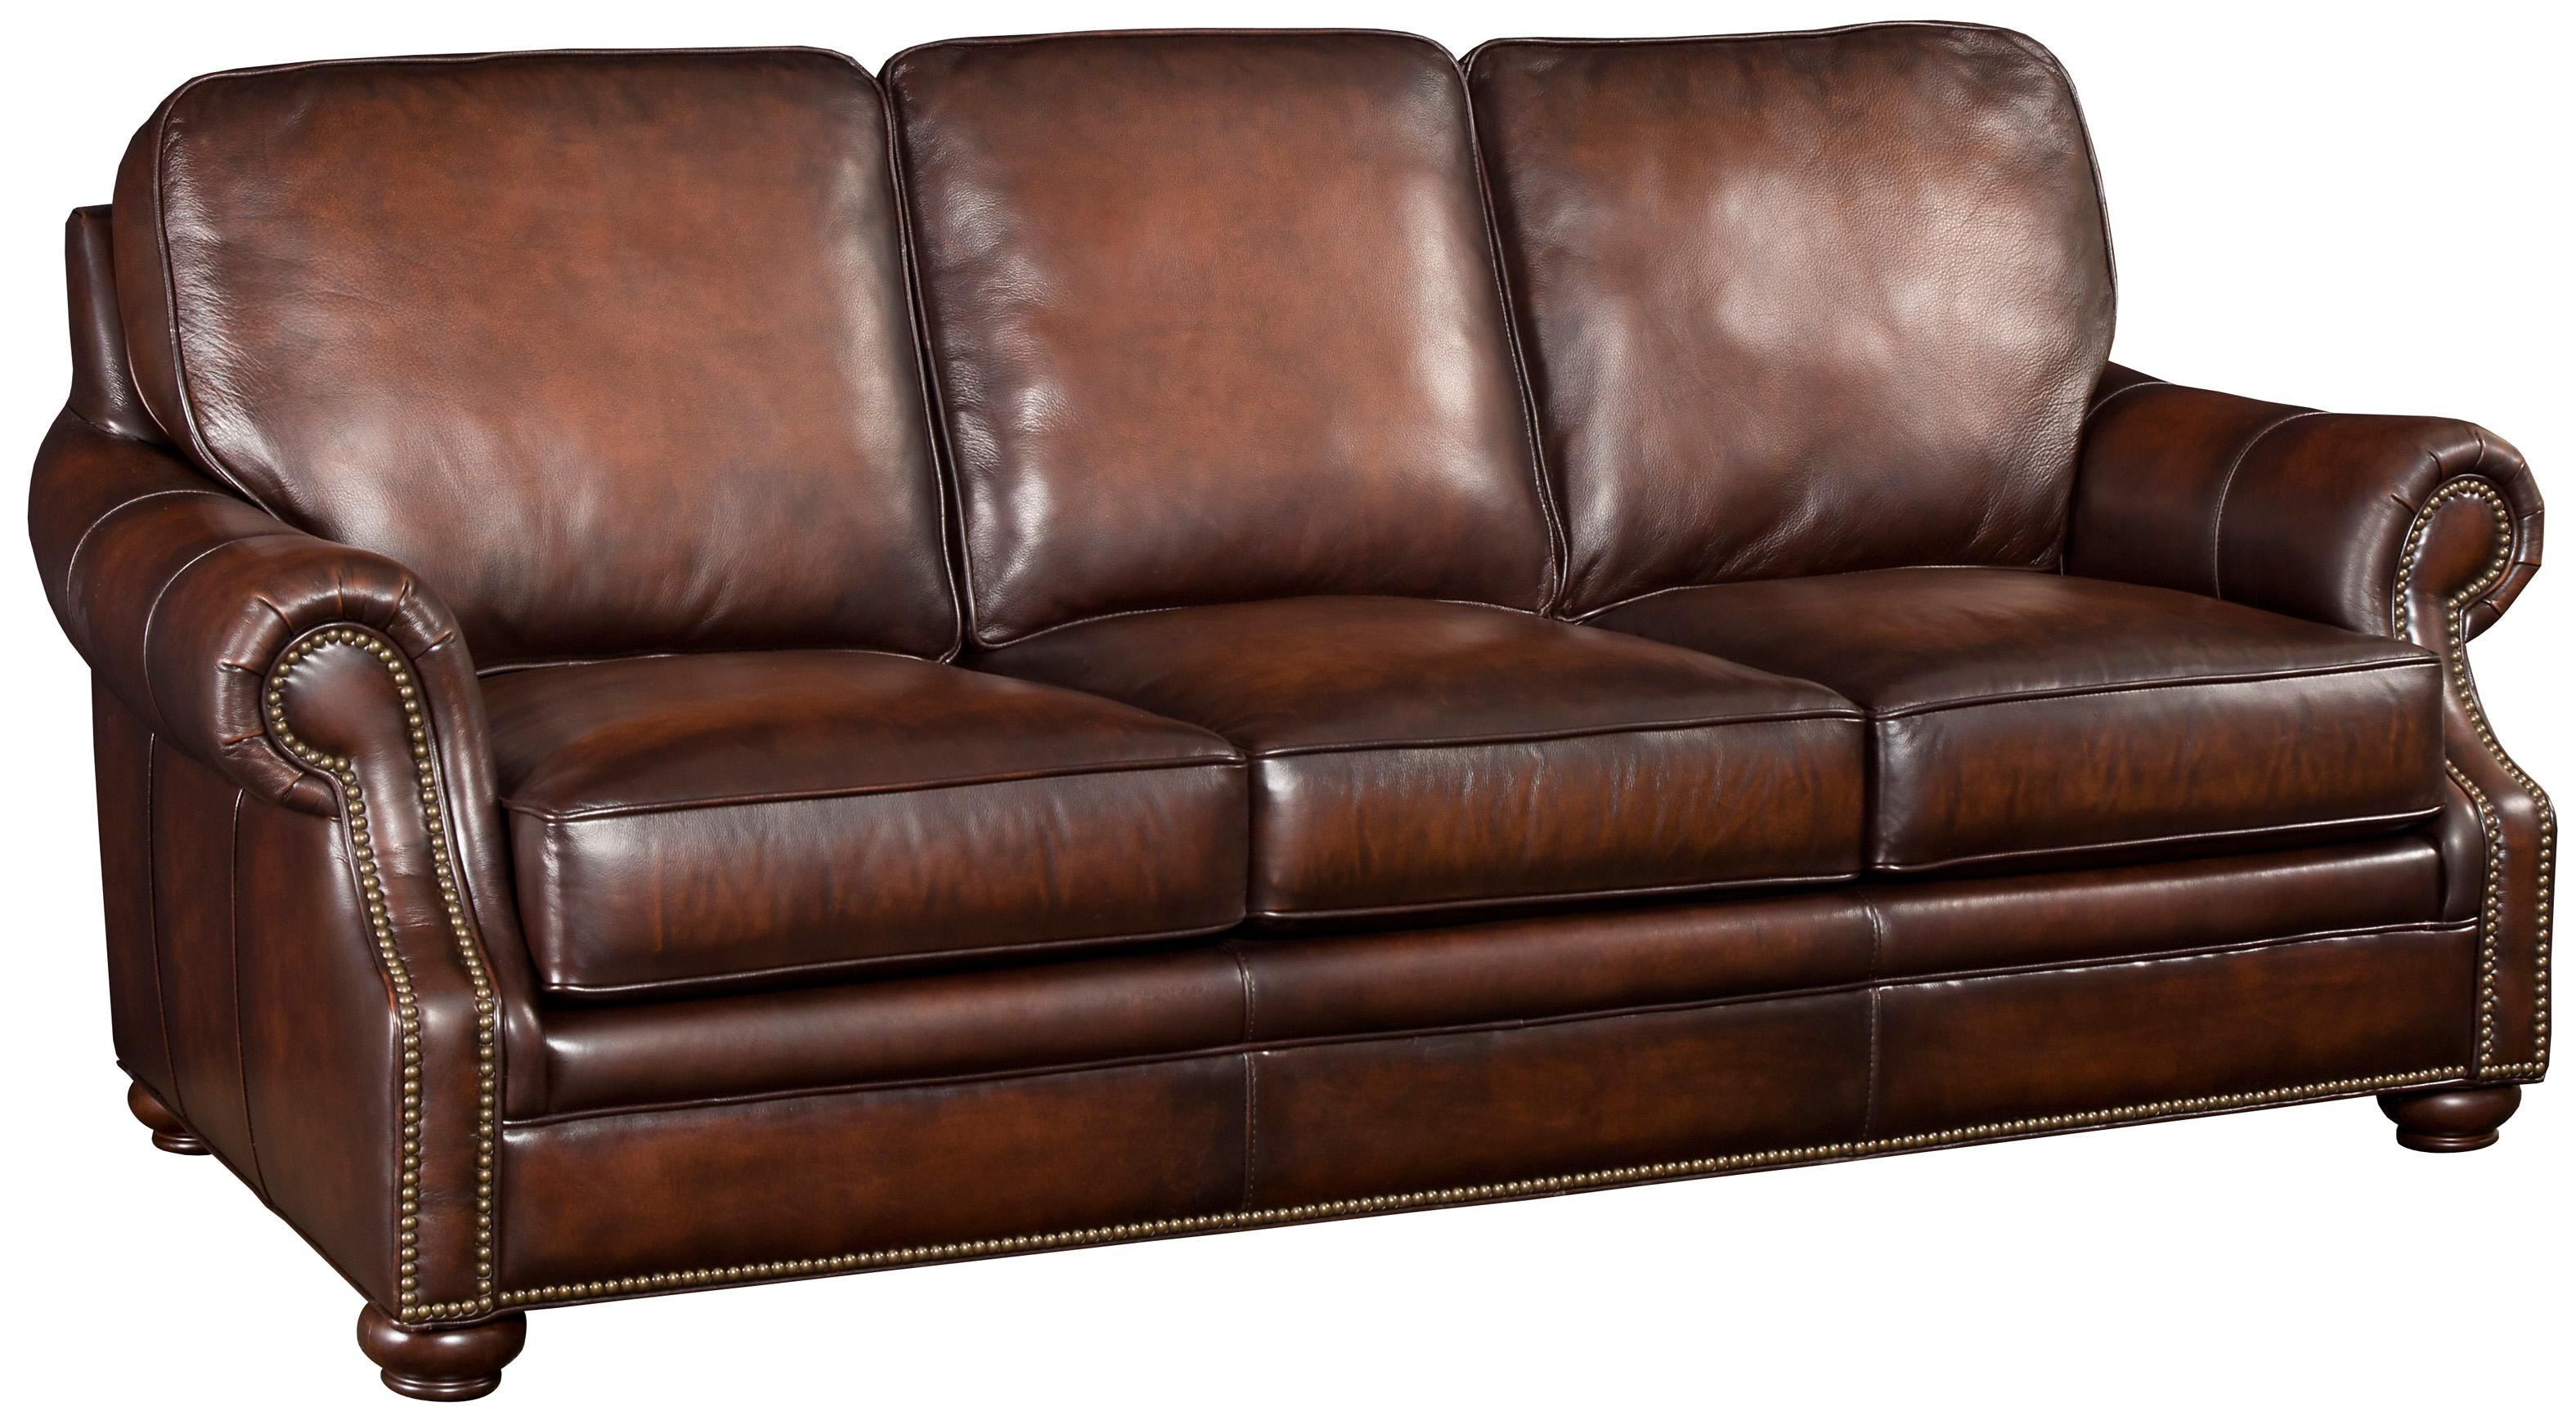 hamilton home ss185 brown leather sofa with wood exposed bun foot rotmans sofa. Black Bedroom Furniture Sets. Home Design Ideas